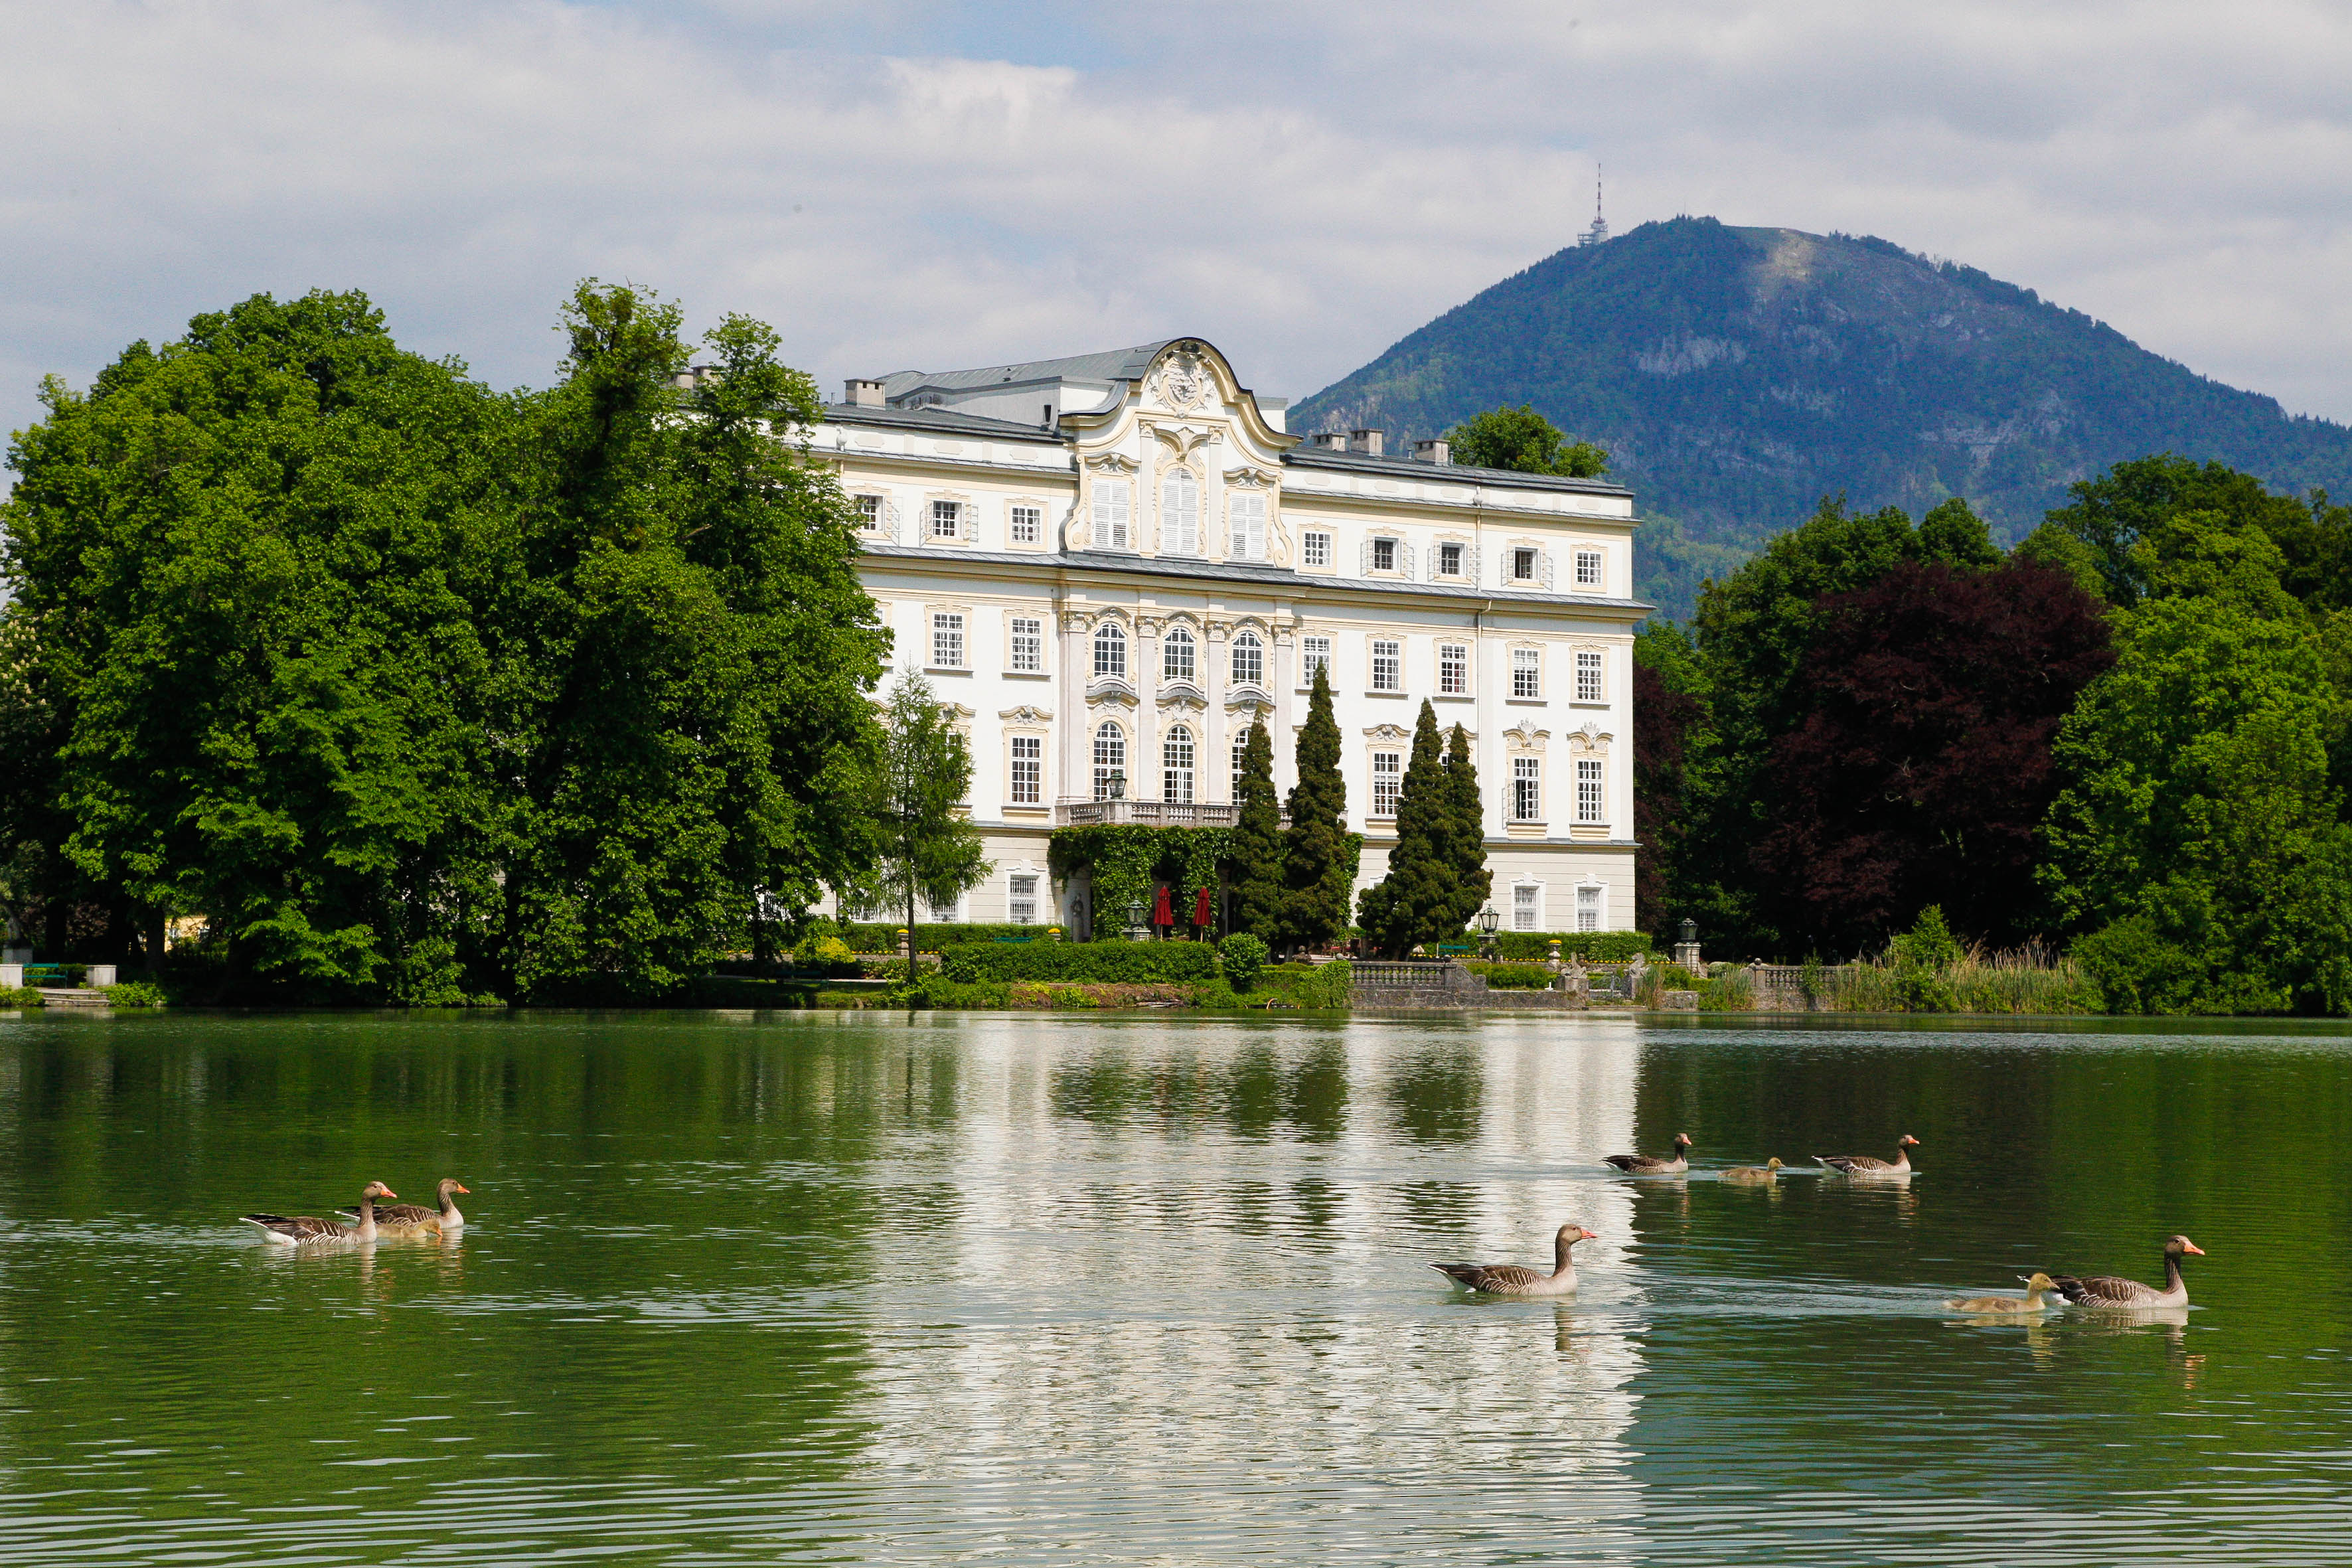 Sound of music von trapp house bavaria pinterest for House house house music